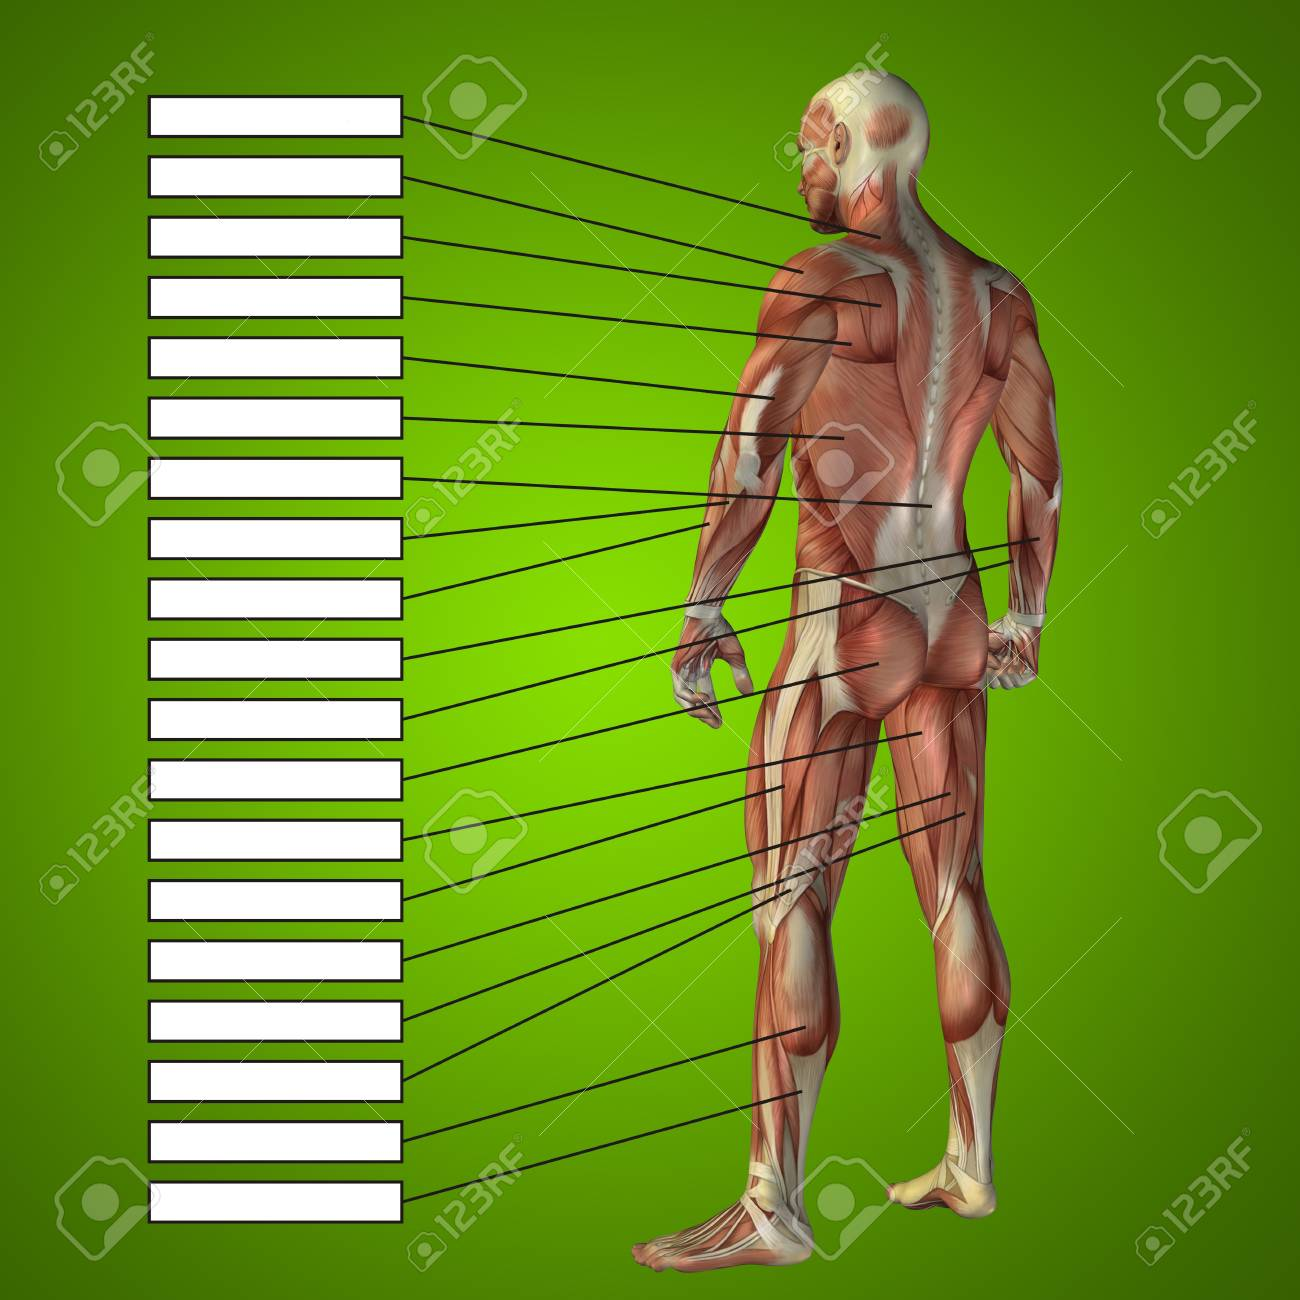 3d Human Male Anatomy With Muscles And Text Box On Green Background